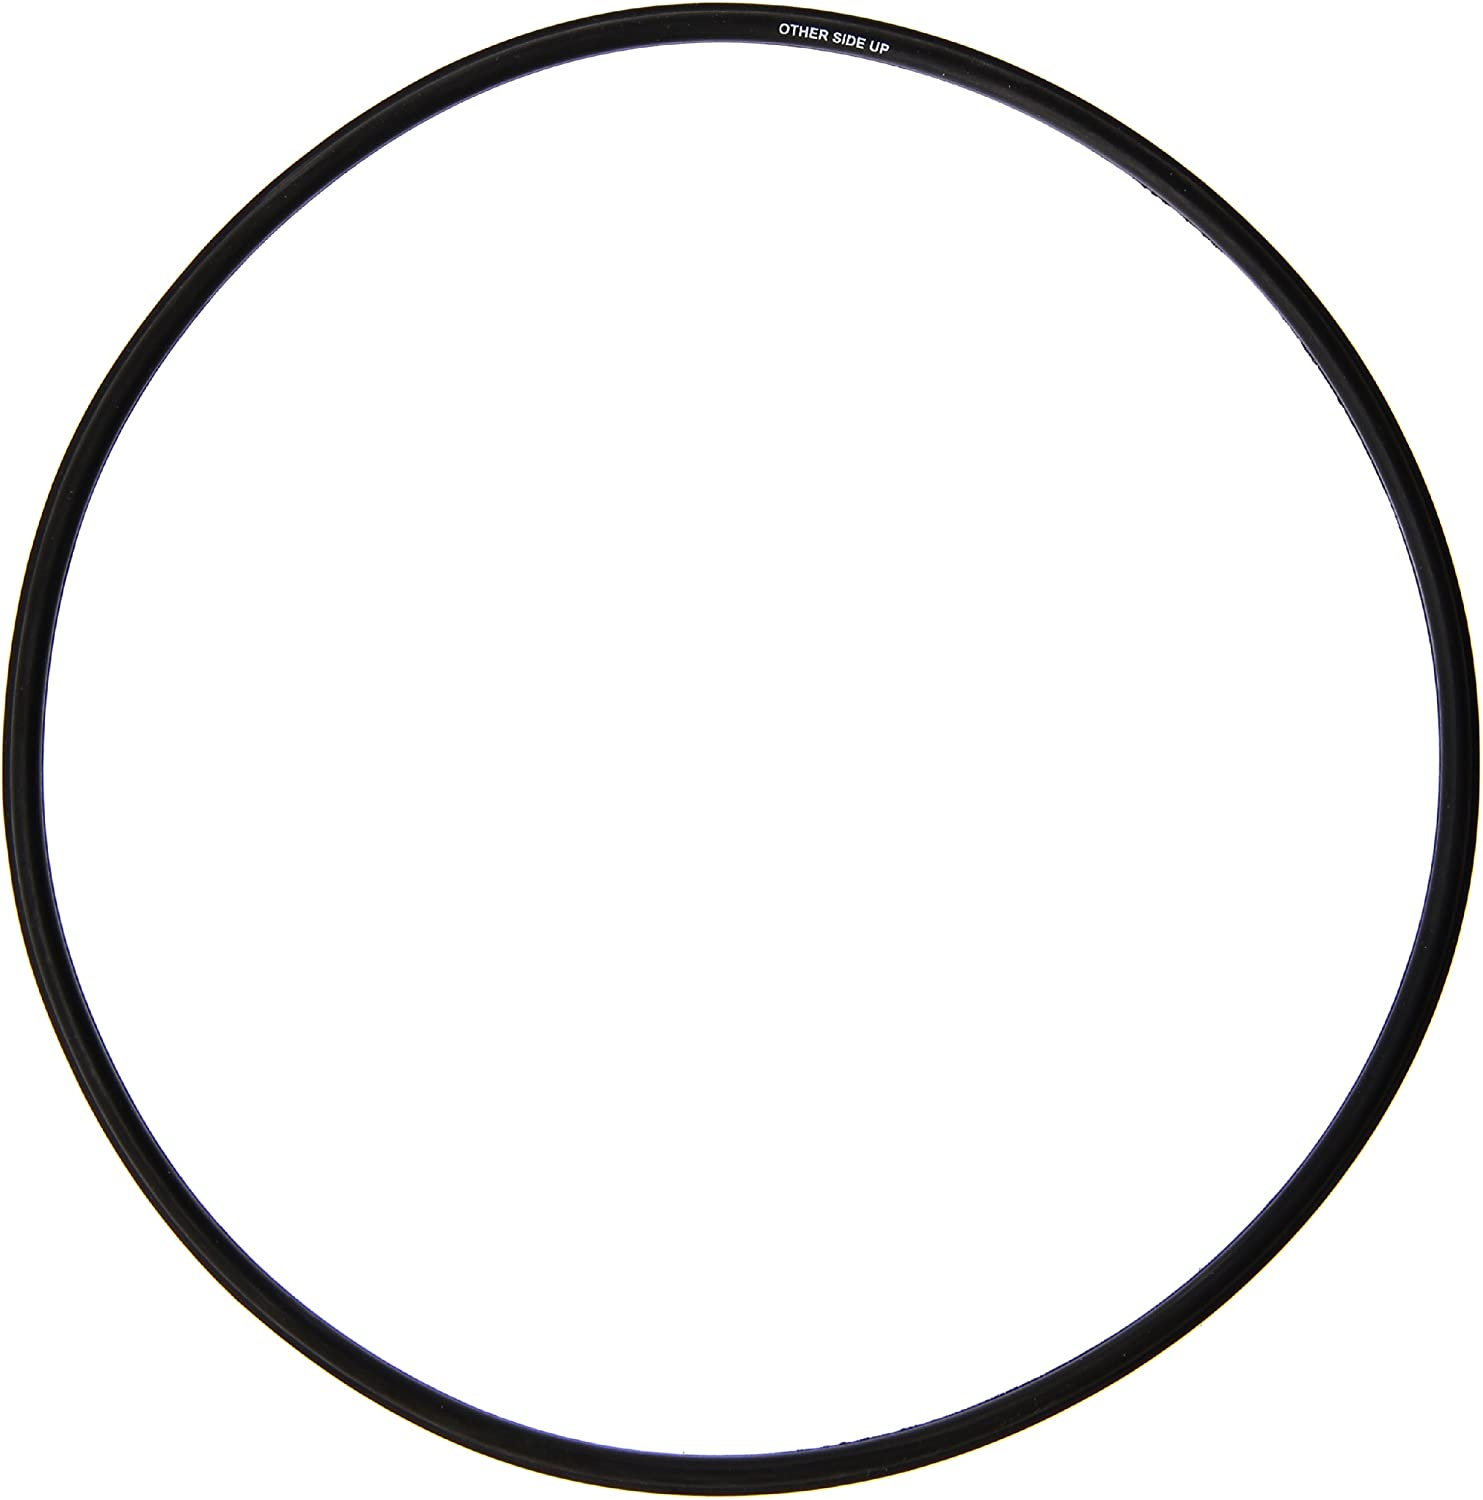 Futura F10-16 Gasket Sealing Ring for Futura 3.5 to 7-Liter Pressure Cooker